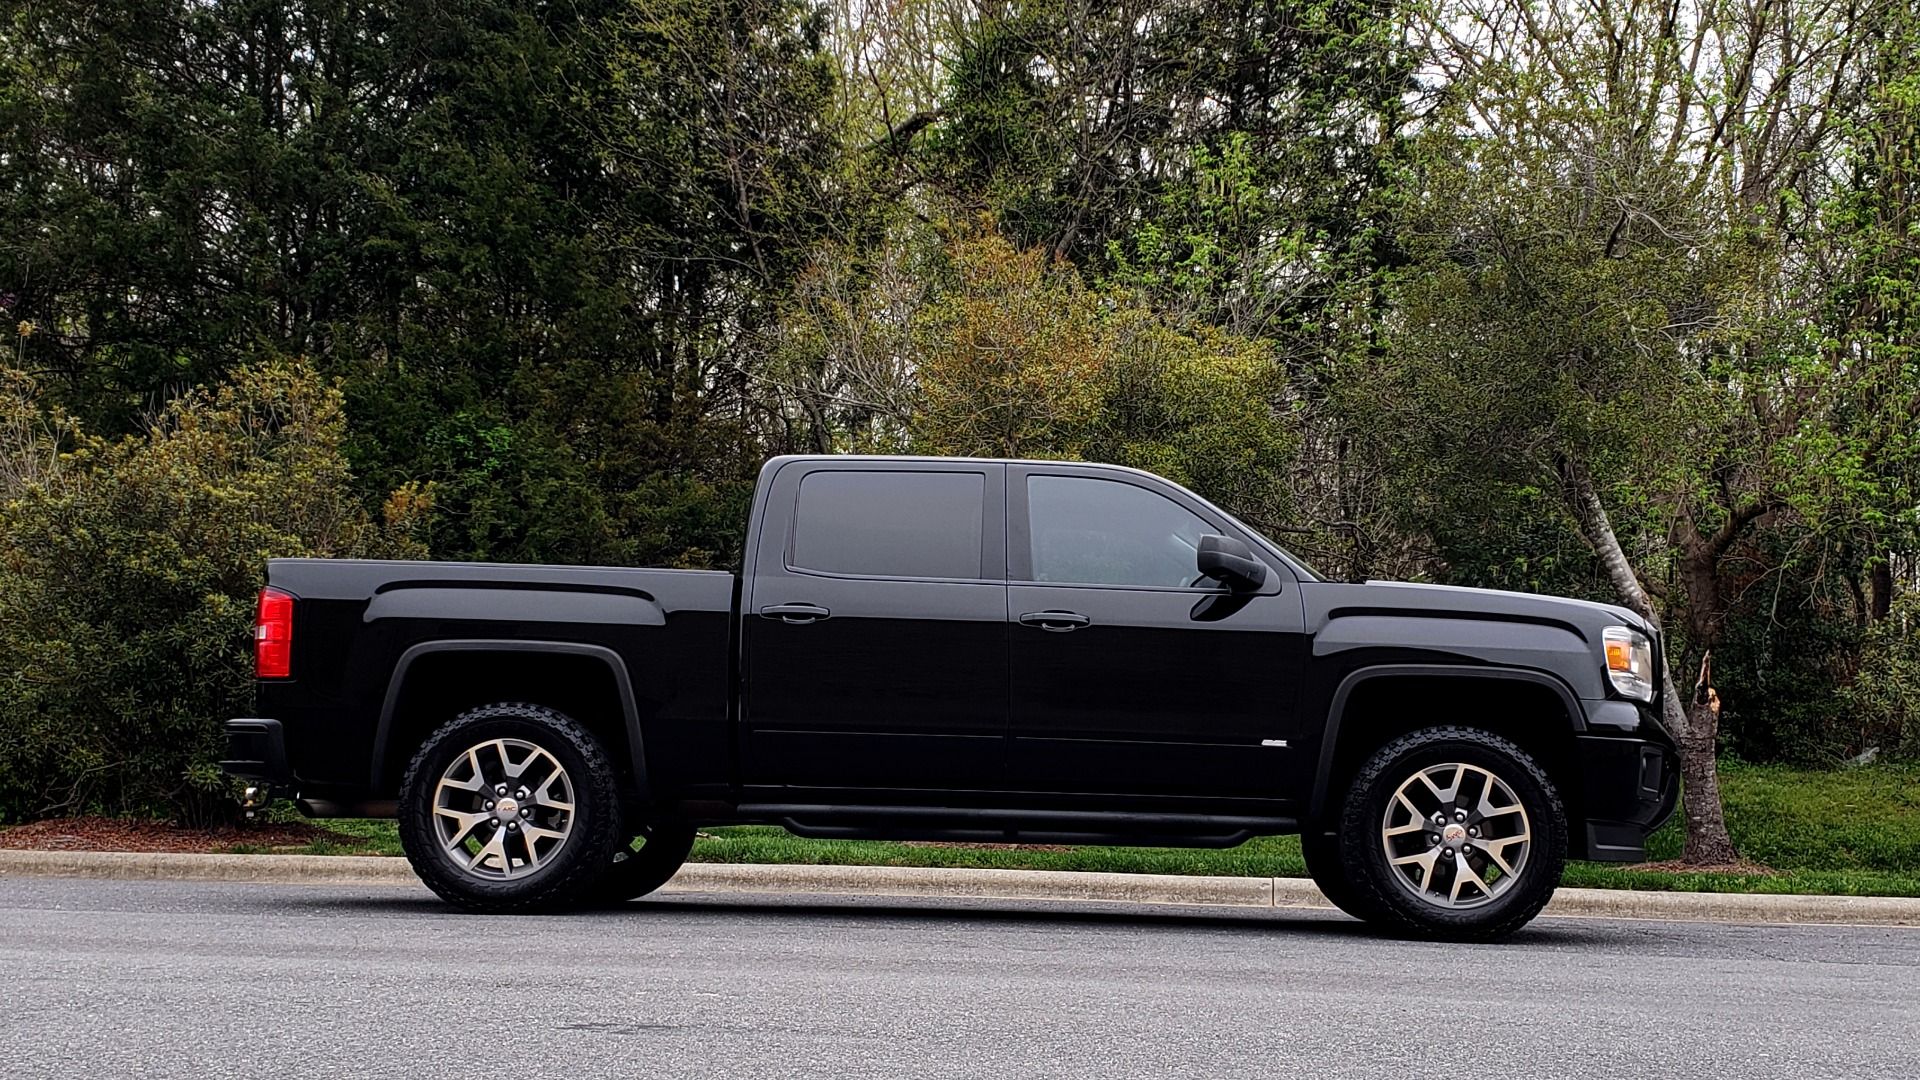 Used 2015 GMC SIERRA 1500 SLT 4WD CREW CAB / 6.2L V8 / NAV / BOSE / REARVIEW for sale Sold at Formula Imports in Charlotte NC 28227 5